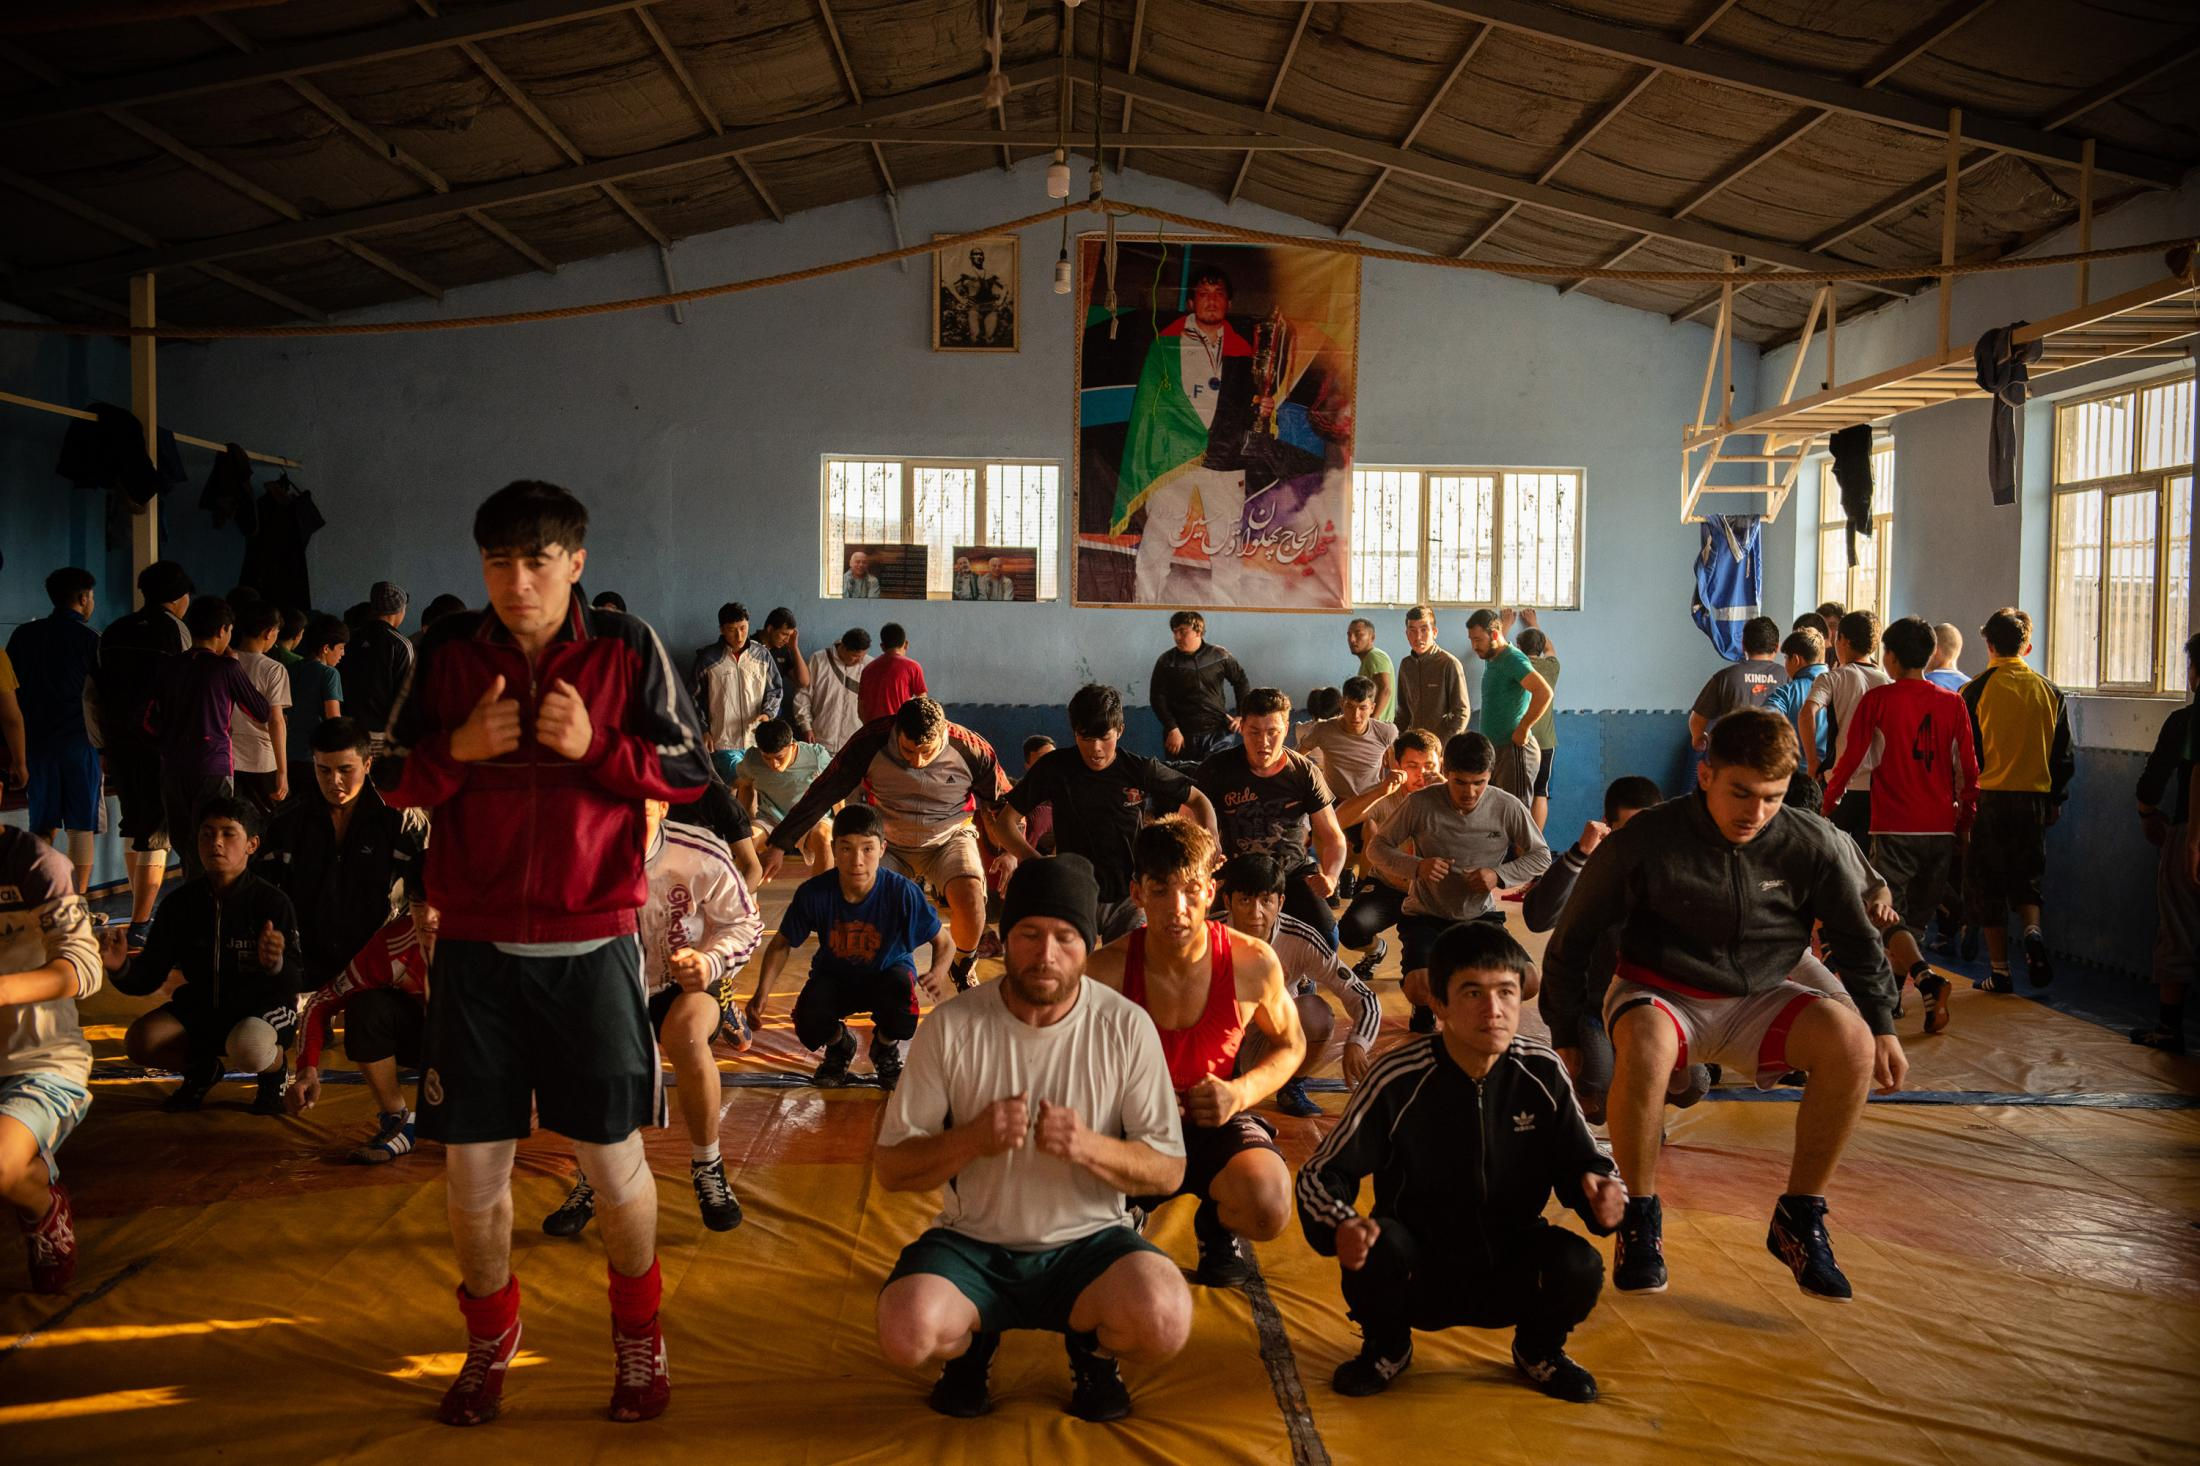 KABUL | AFGHANISTAN | 2/6/19 | Members of Maiwand Wrestling Club warm up with repetitions under the instruction of their coach before they start practicing their wrestling techniques with their partners. On Sept. 5, an Islamic State suicide bomber looking for Shiites to kill, burst in and took the lives of as many as 30 people at the club. Despite the attack, everyday, over 100 members, as young as 9 year old, come together to practice inside Maiwand Club. Kiana Hayeri for The New York Times